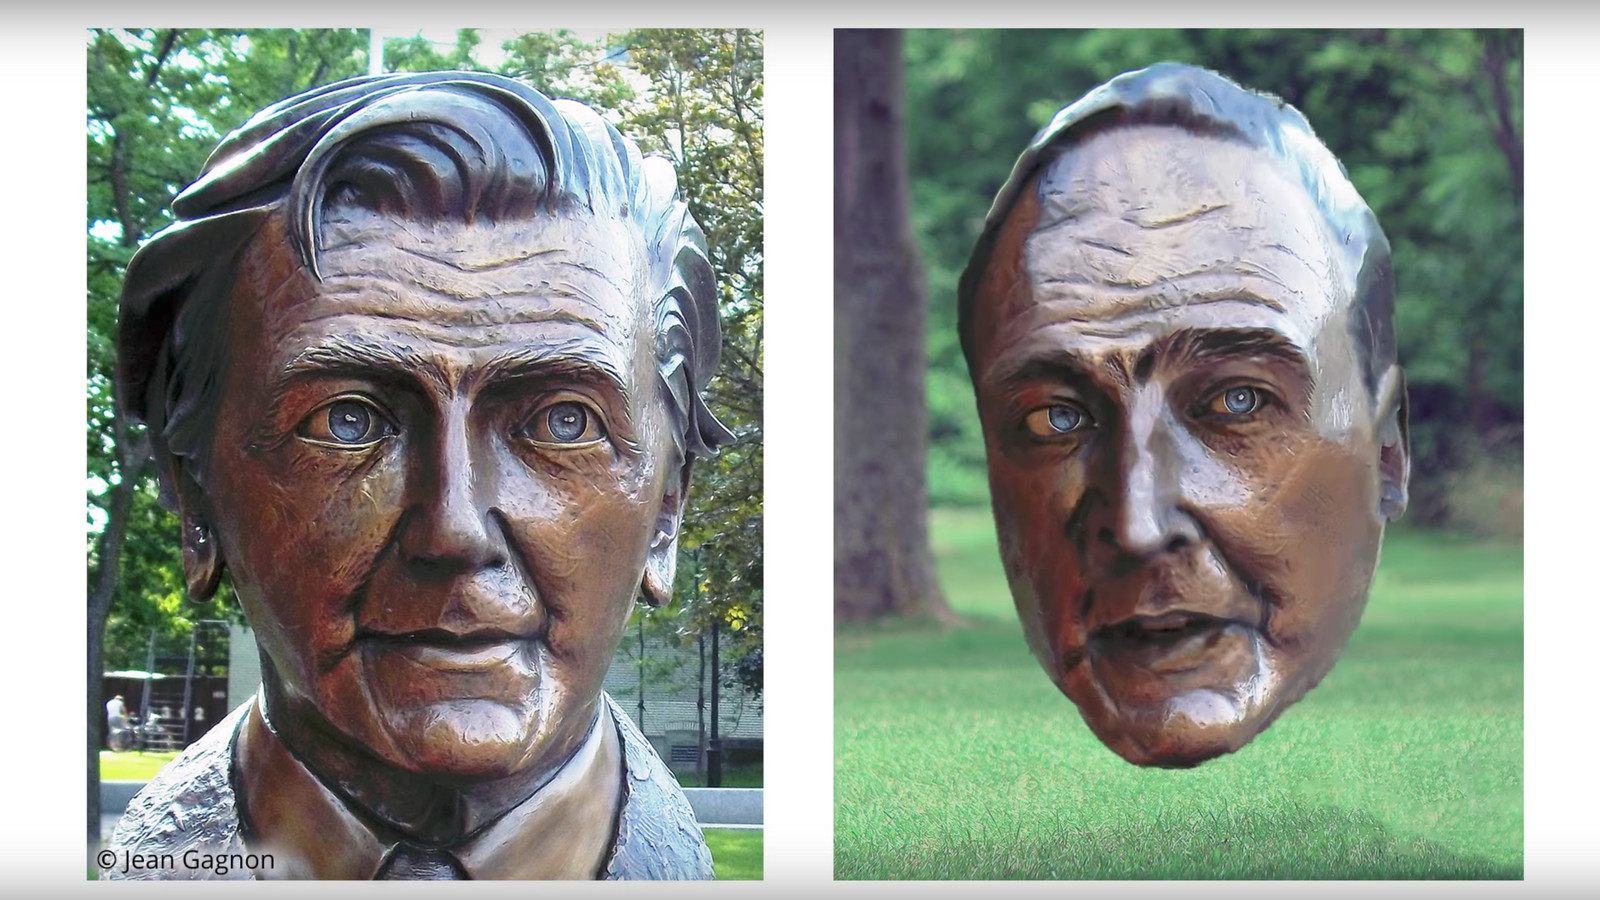 This Face Filter Technology Can Turn You into a Statue or an Oil Painting